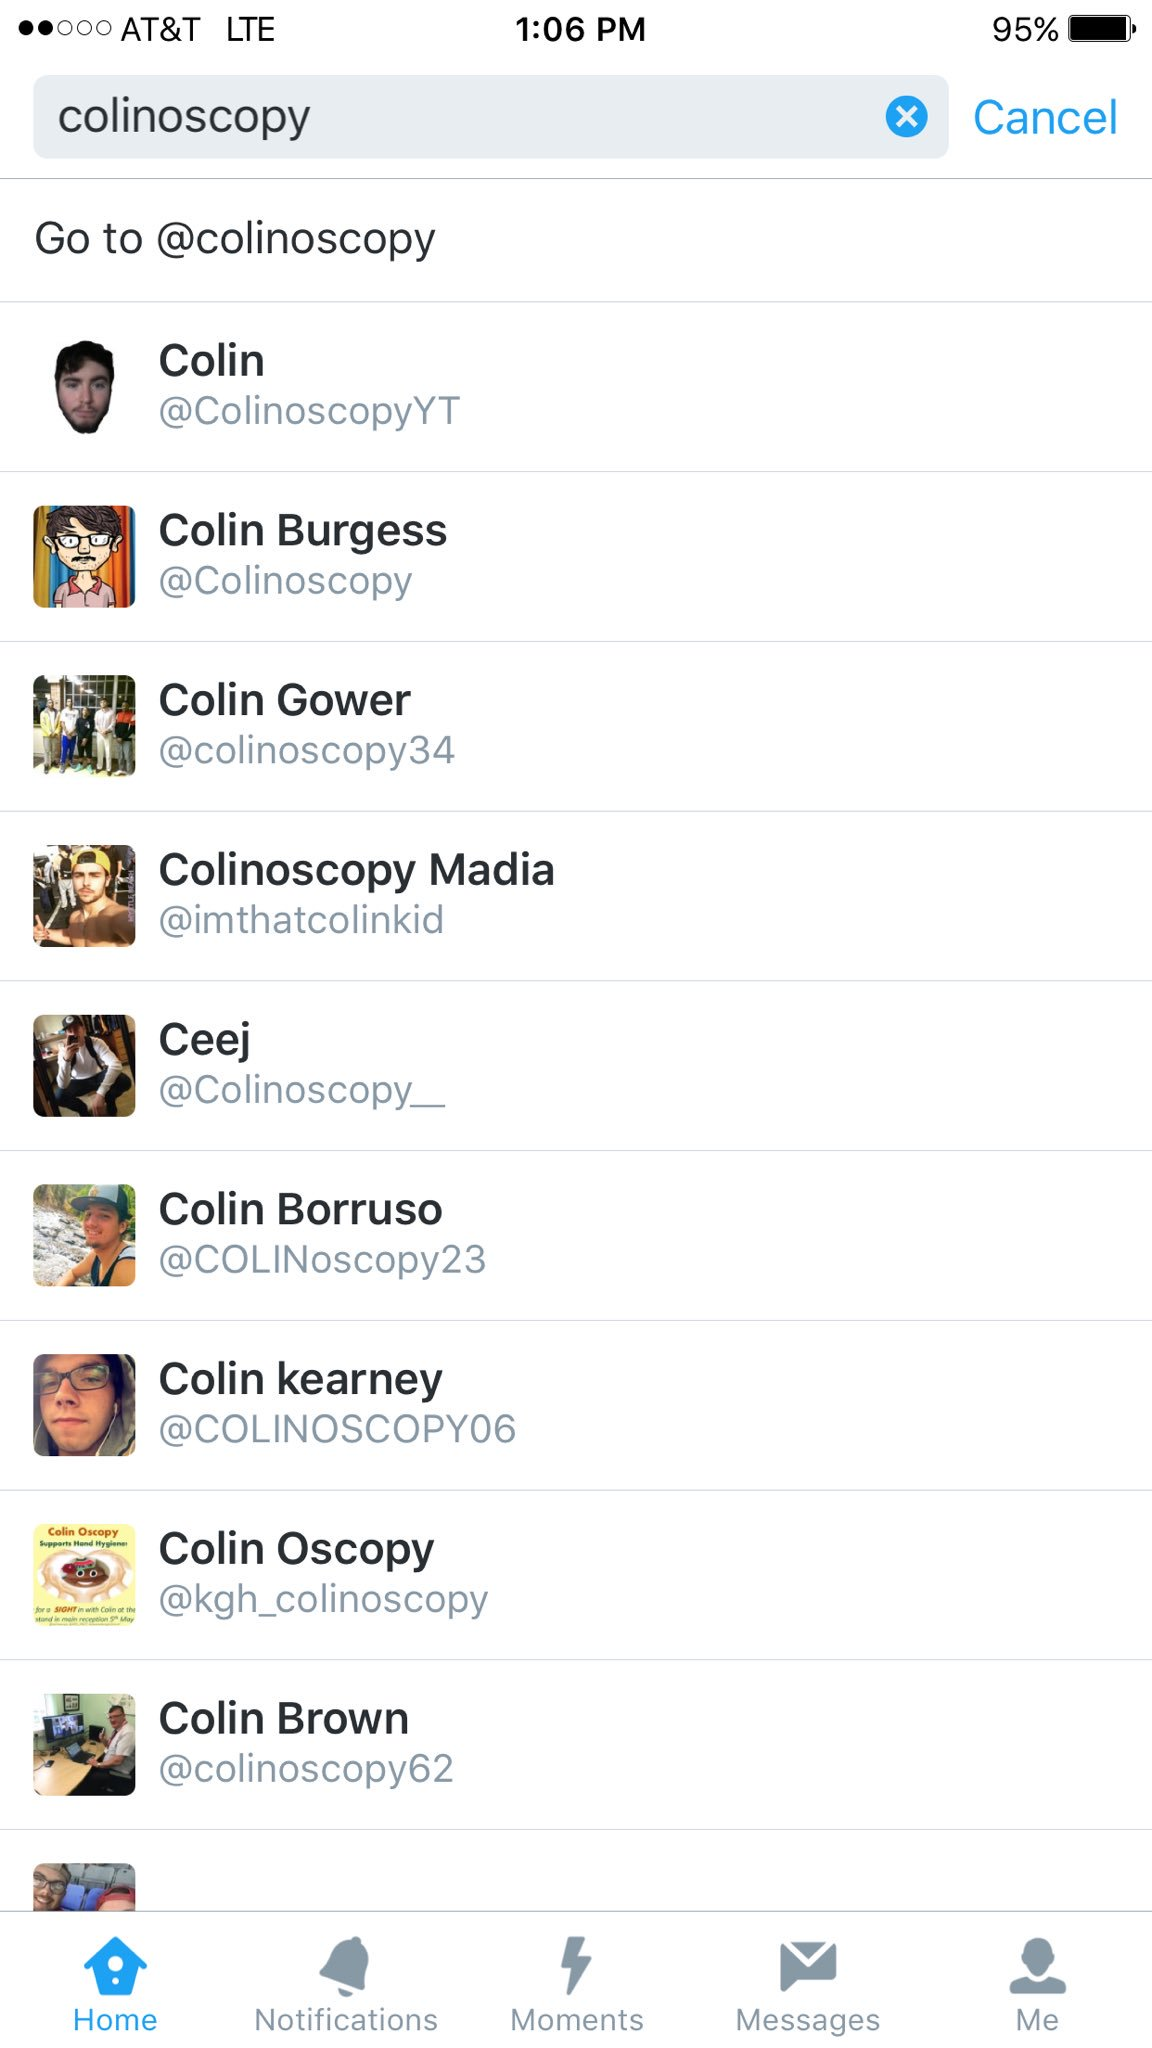 Shoutout to all the very funny guys named Colin on here! Y'all crazy! https://t.co/3lsafLY92N